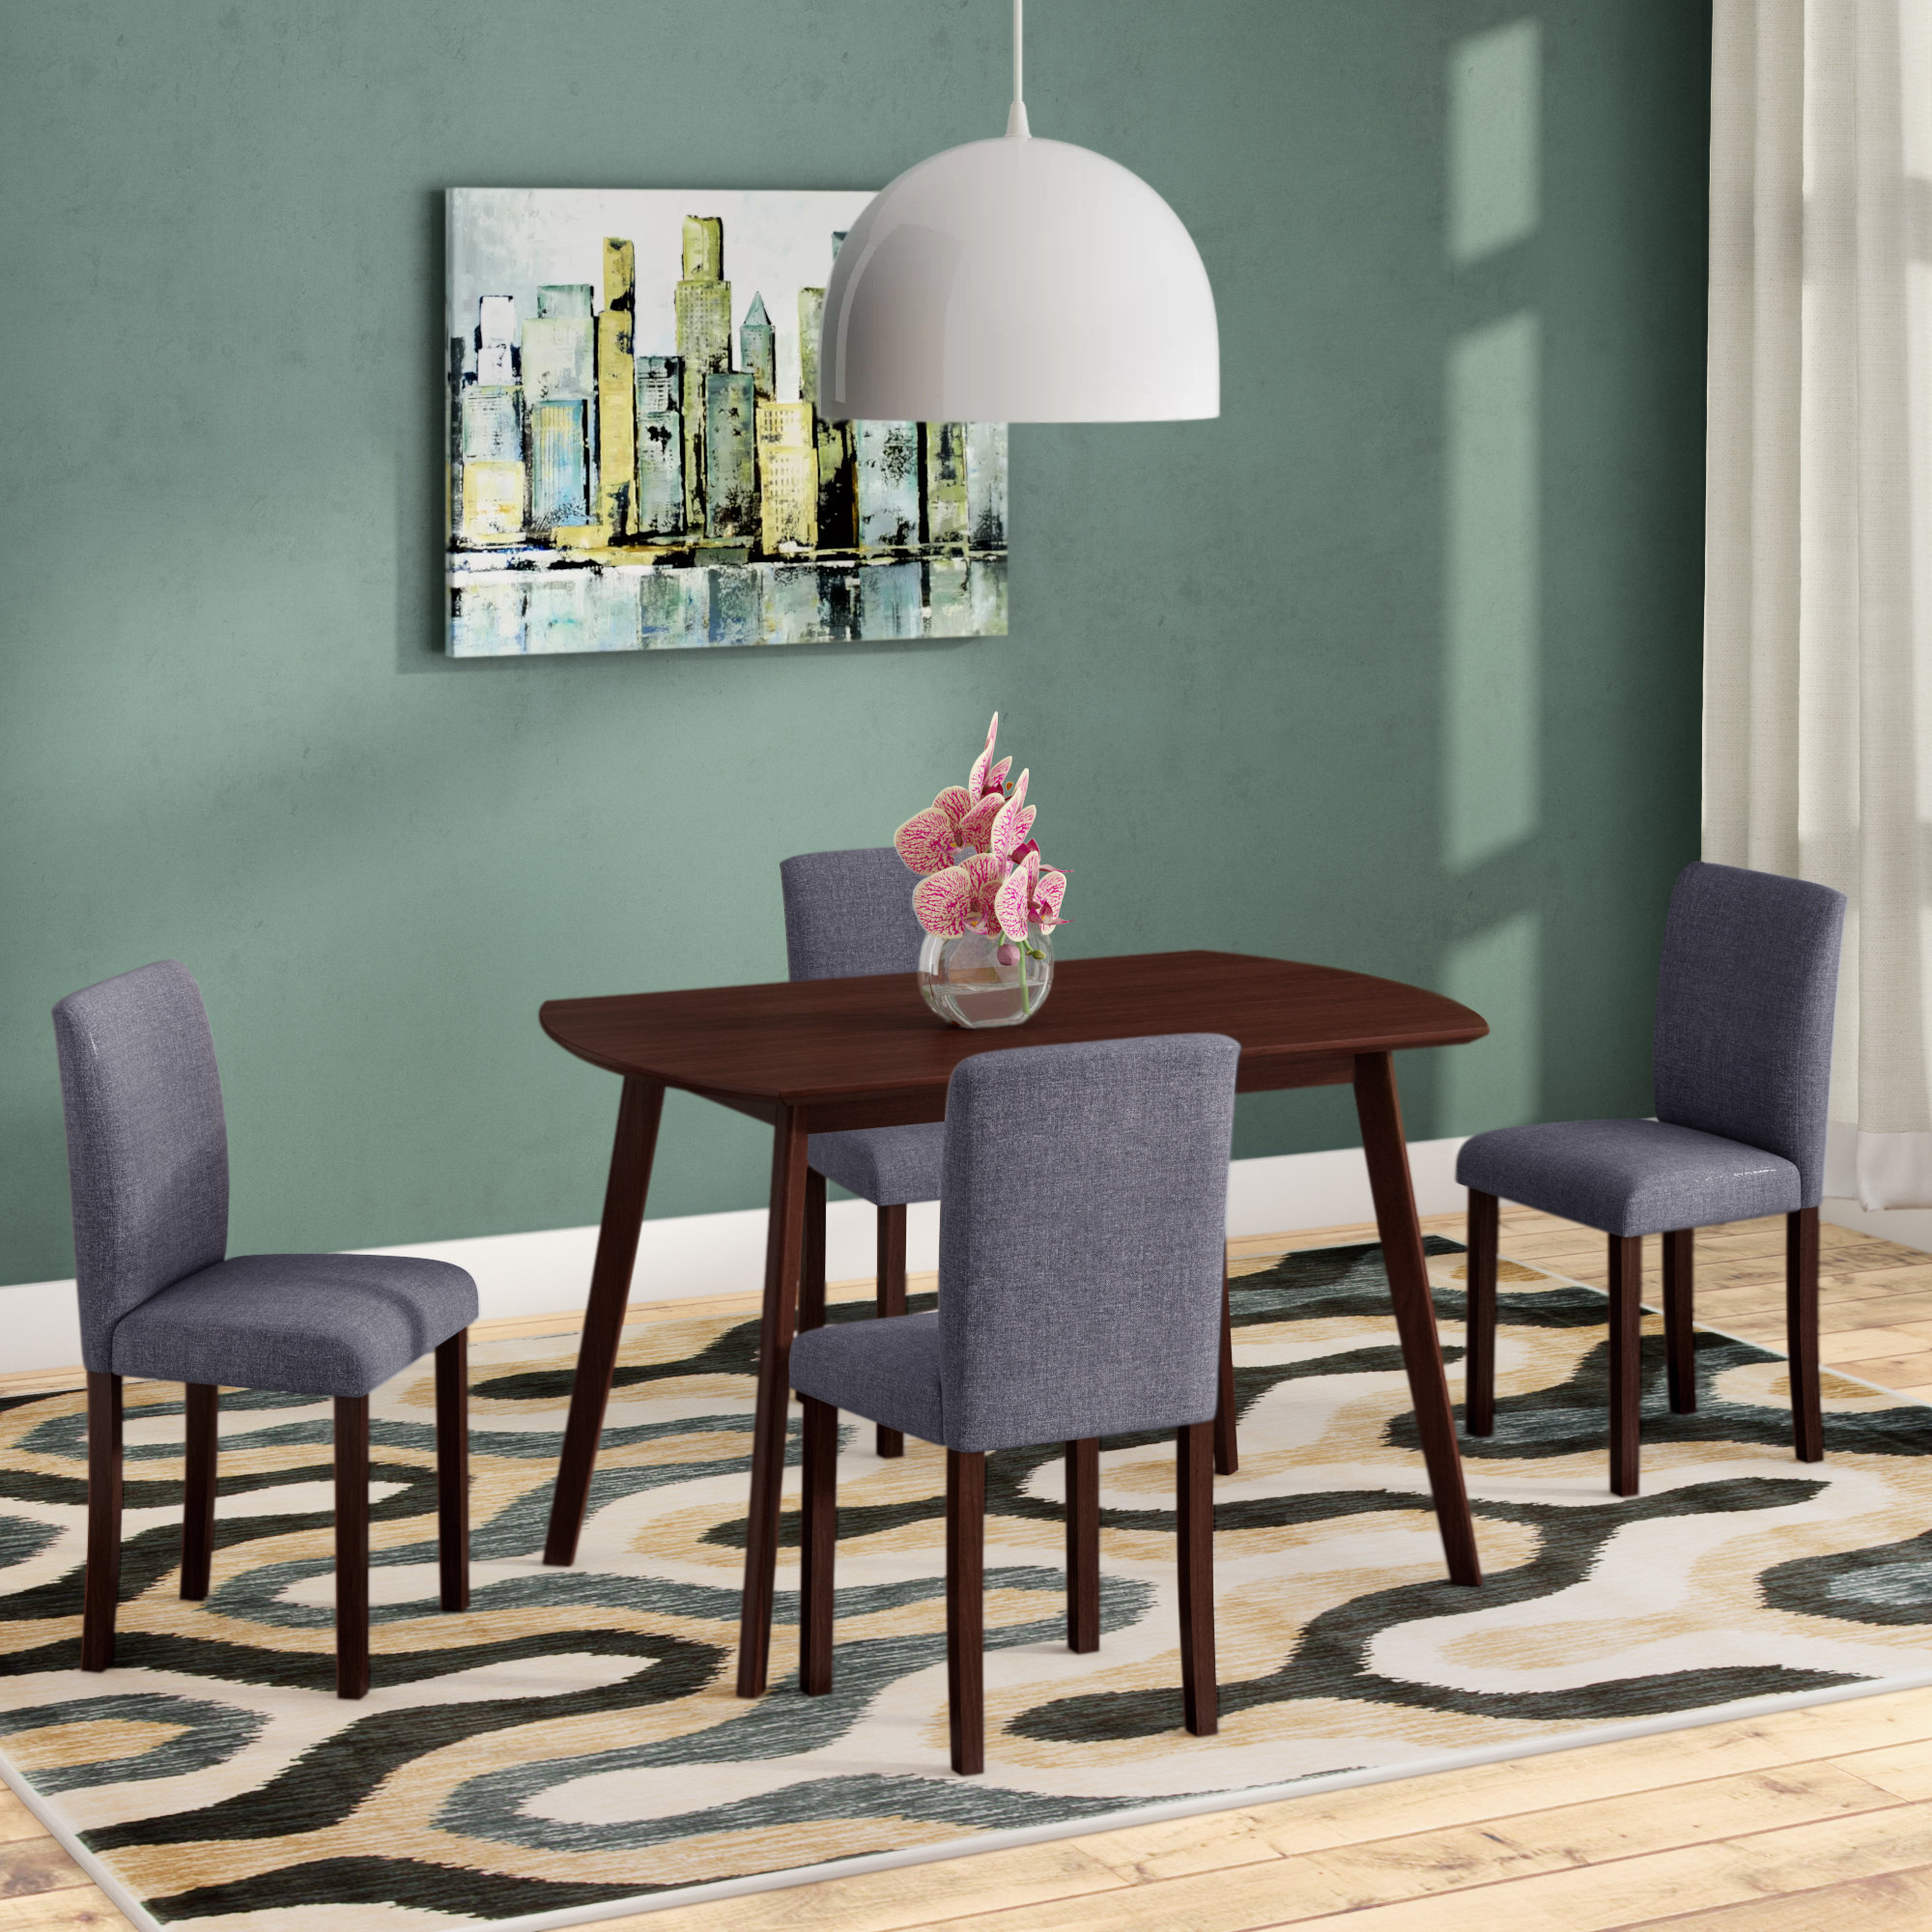 Errico 5 Piece Solid Wood Dining Set Pertaining To Recent Tejeda 5 Piece Dining Sets (View 12 of 20)